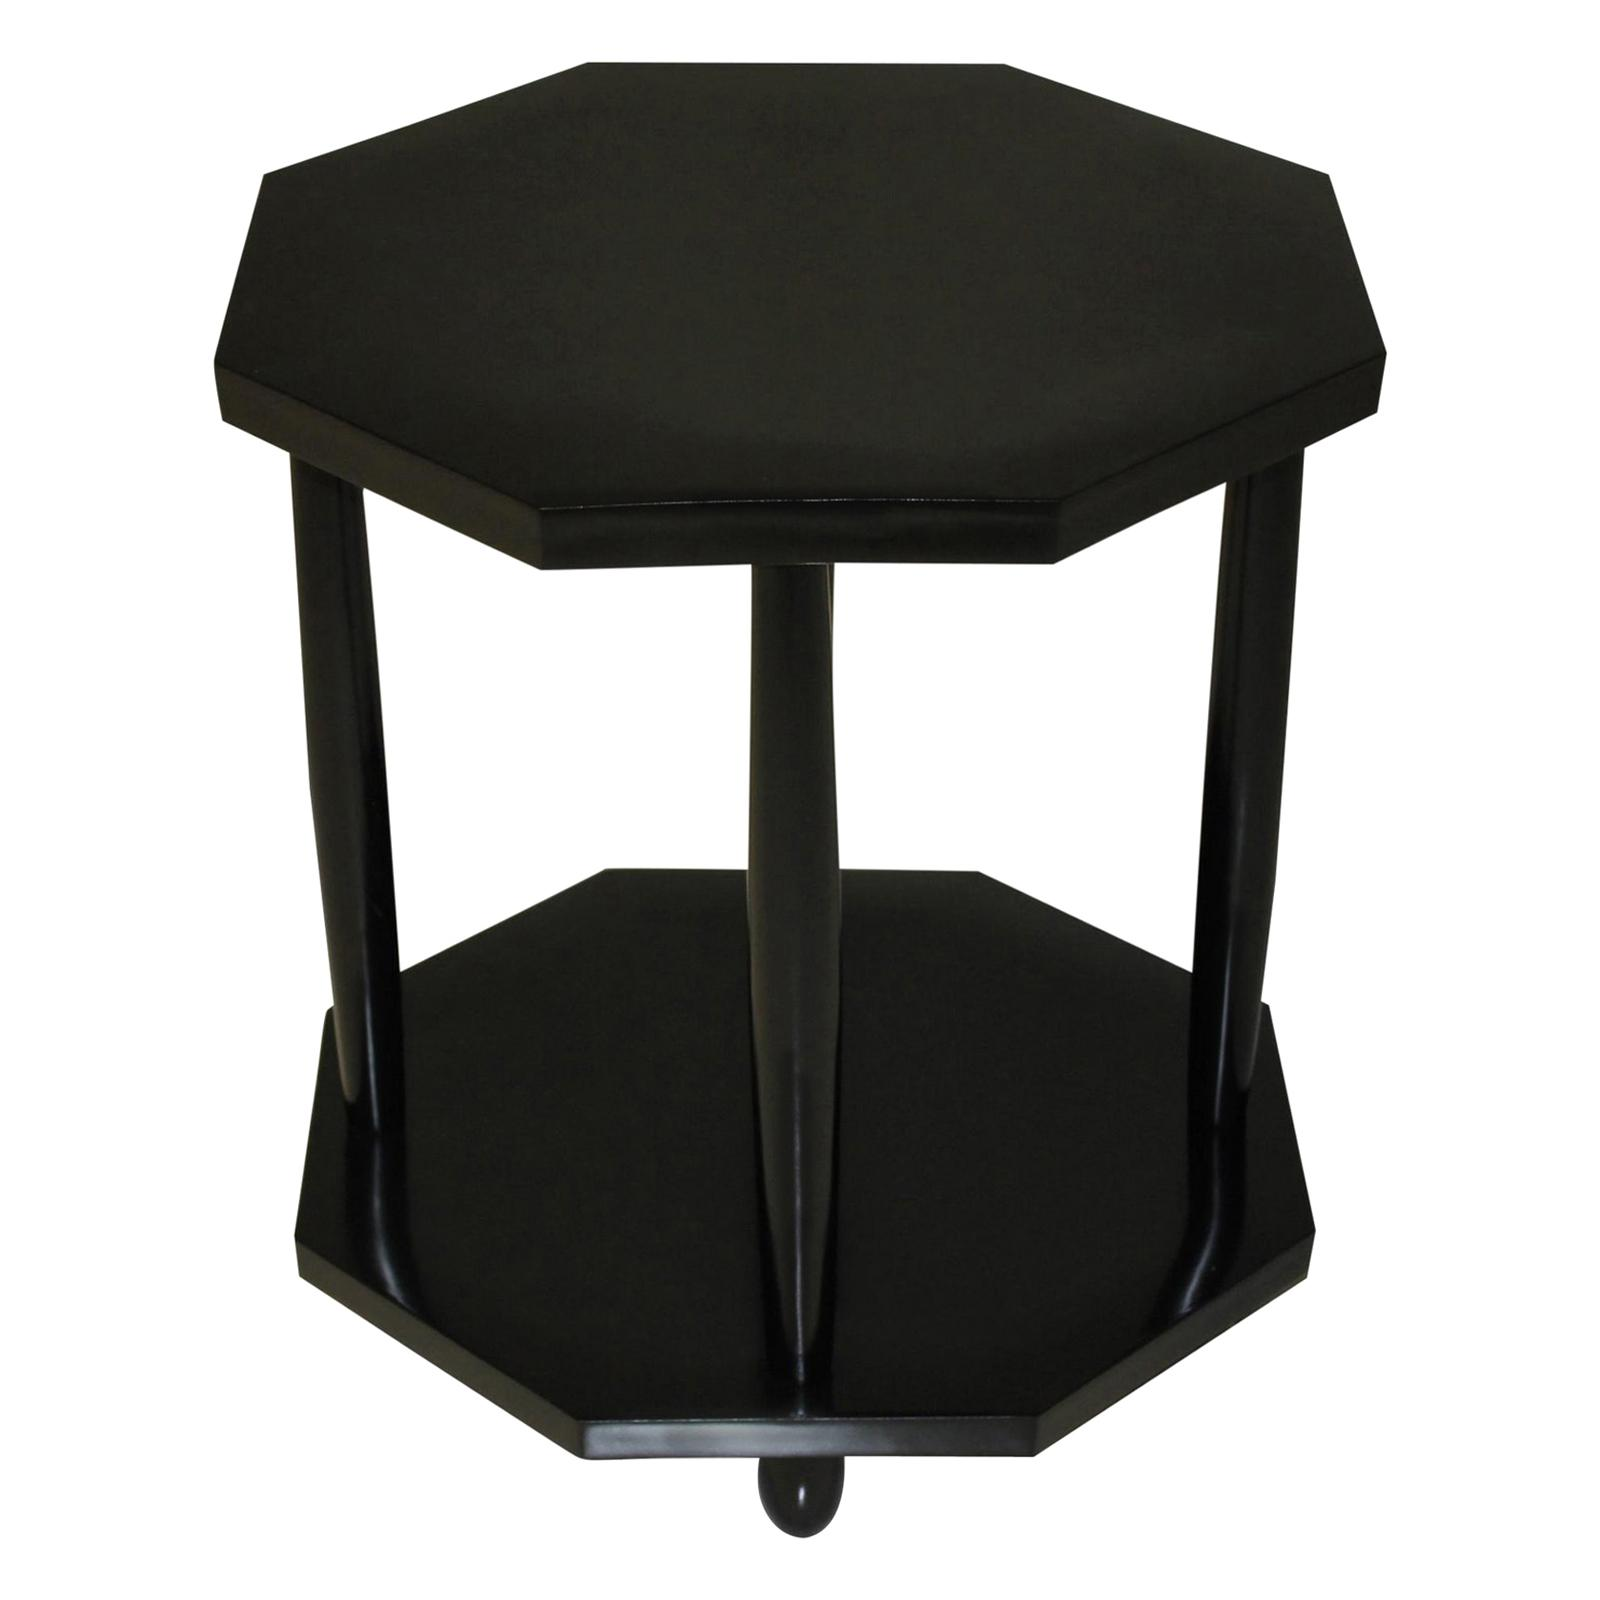 art deco end tables for master black table with basket cherry small boardroom rustic entry rattan patio coffee saarinen iron legs galvanized dark sauder furniture entertainment